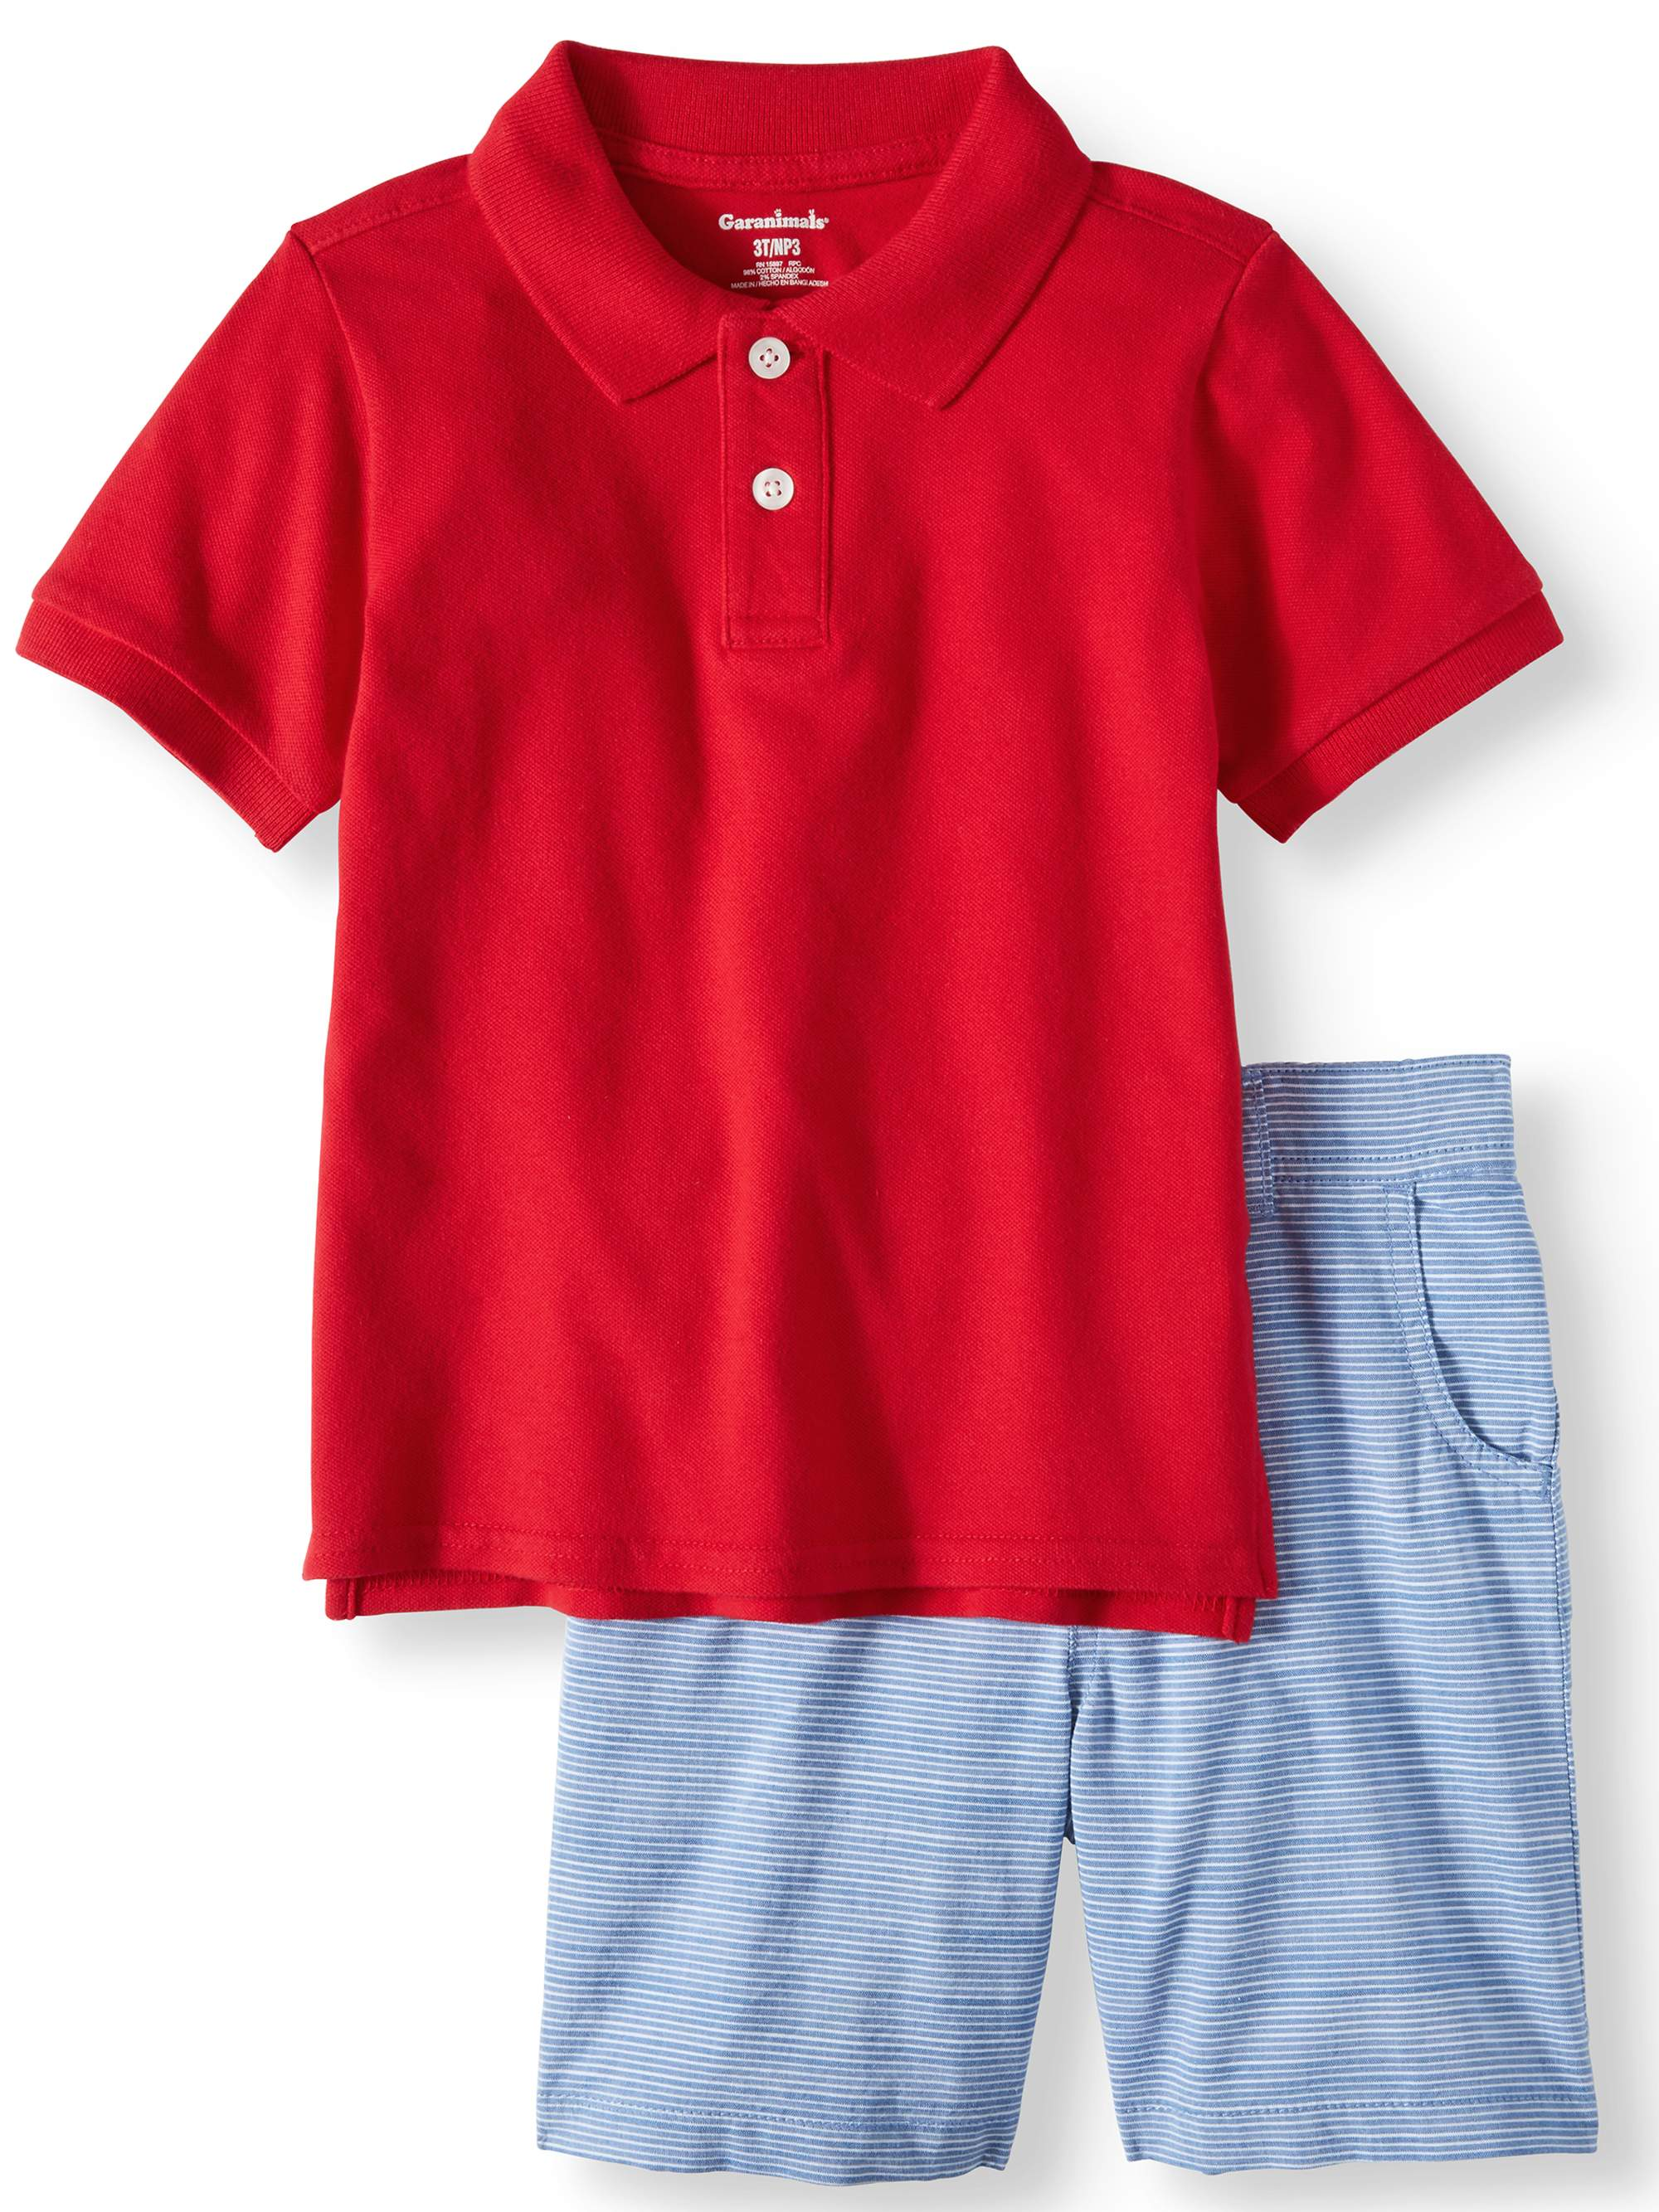 Toddler Boys' Pique Polo Shirt and Flat Front Shorts, 2-Piece Outfit Set